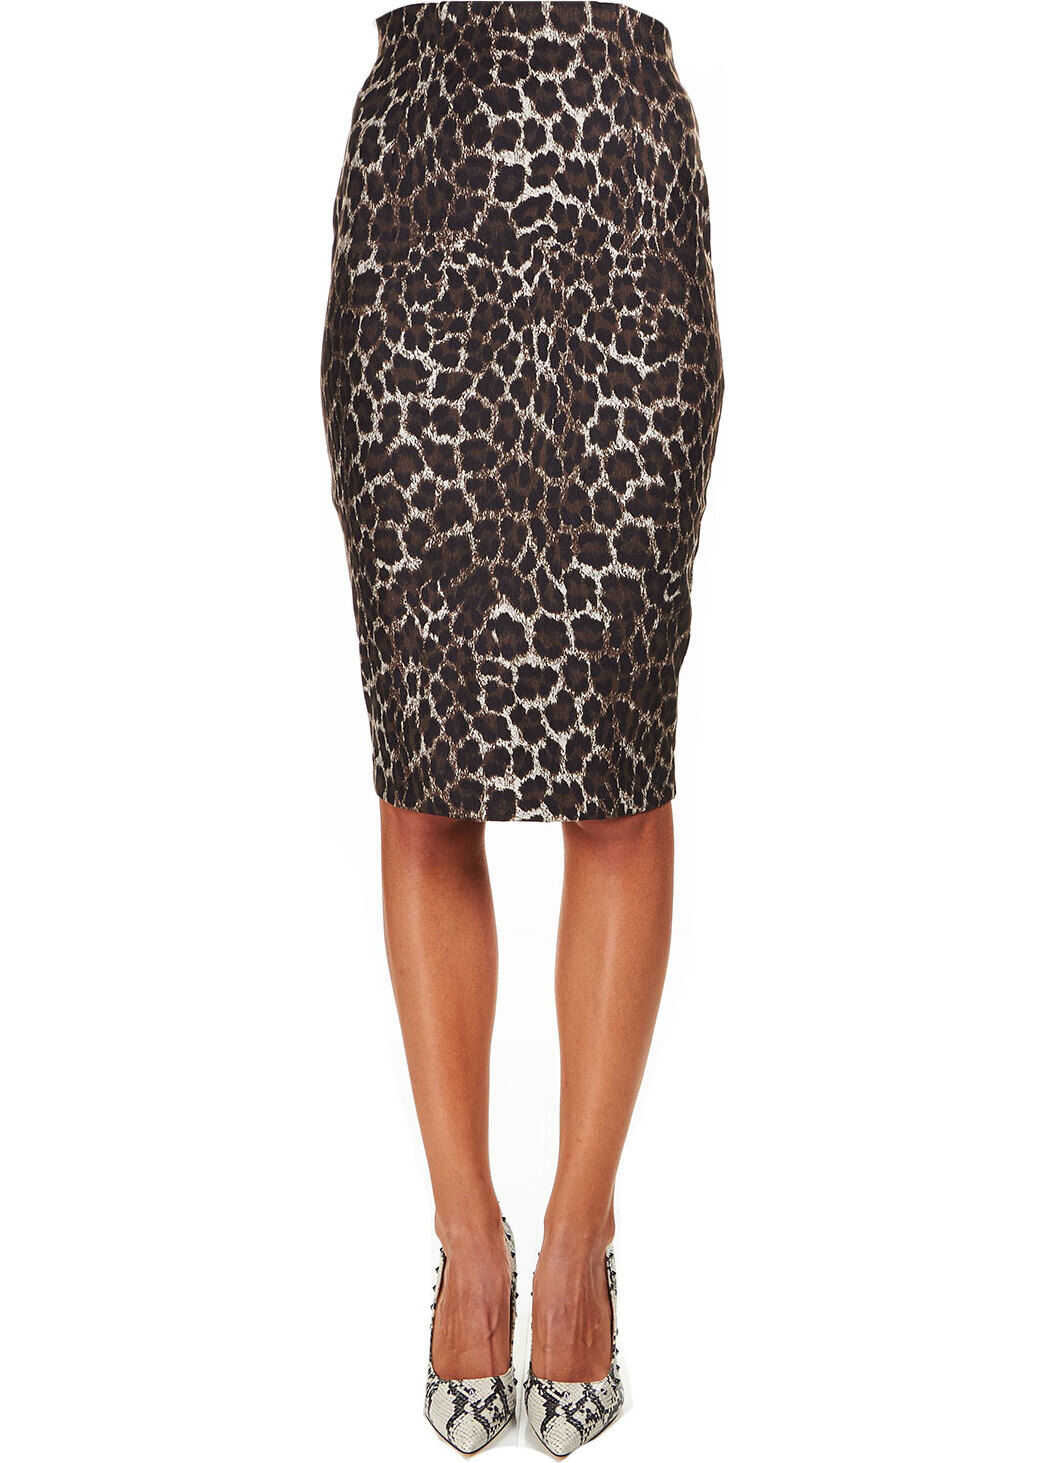 GUESS Pencil skirt with animal print Brown